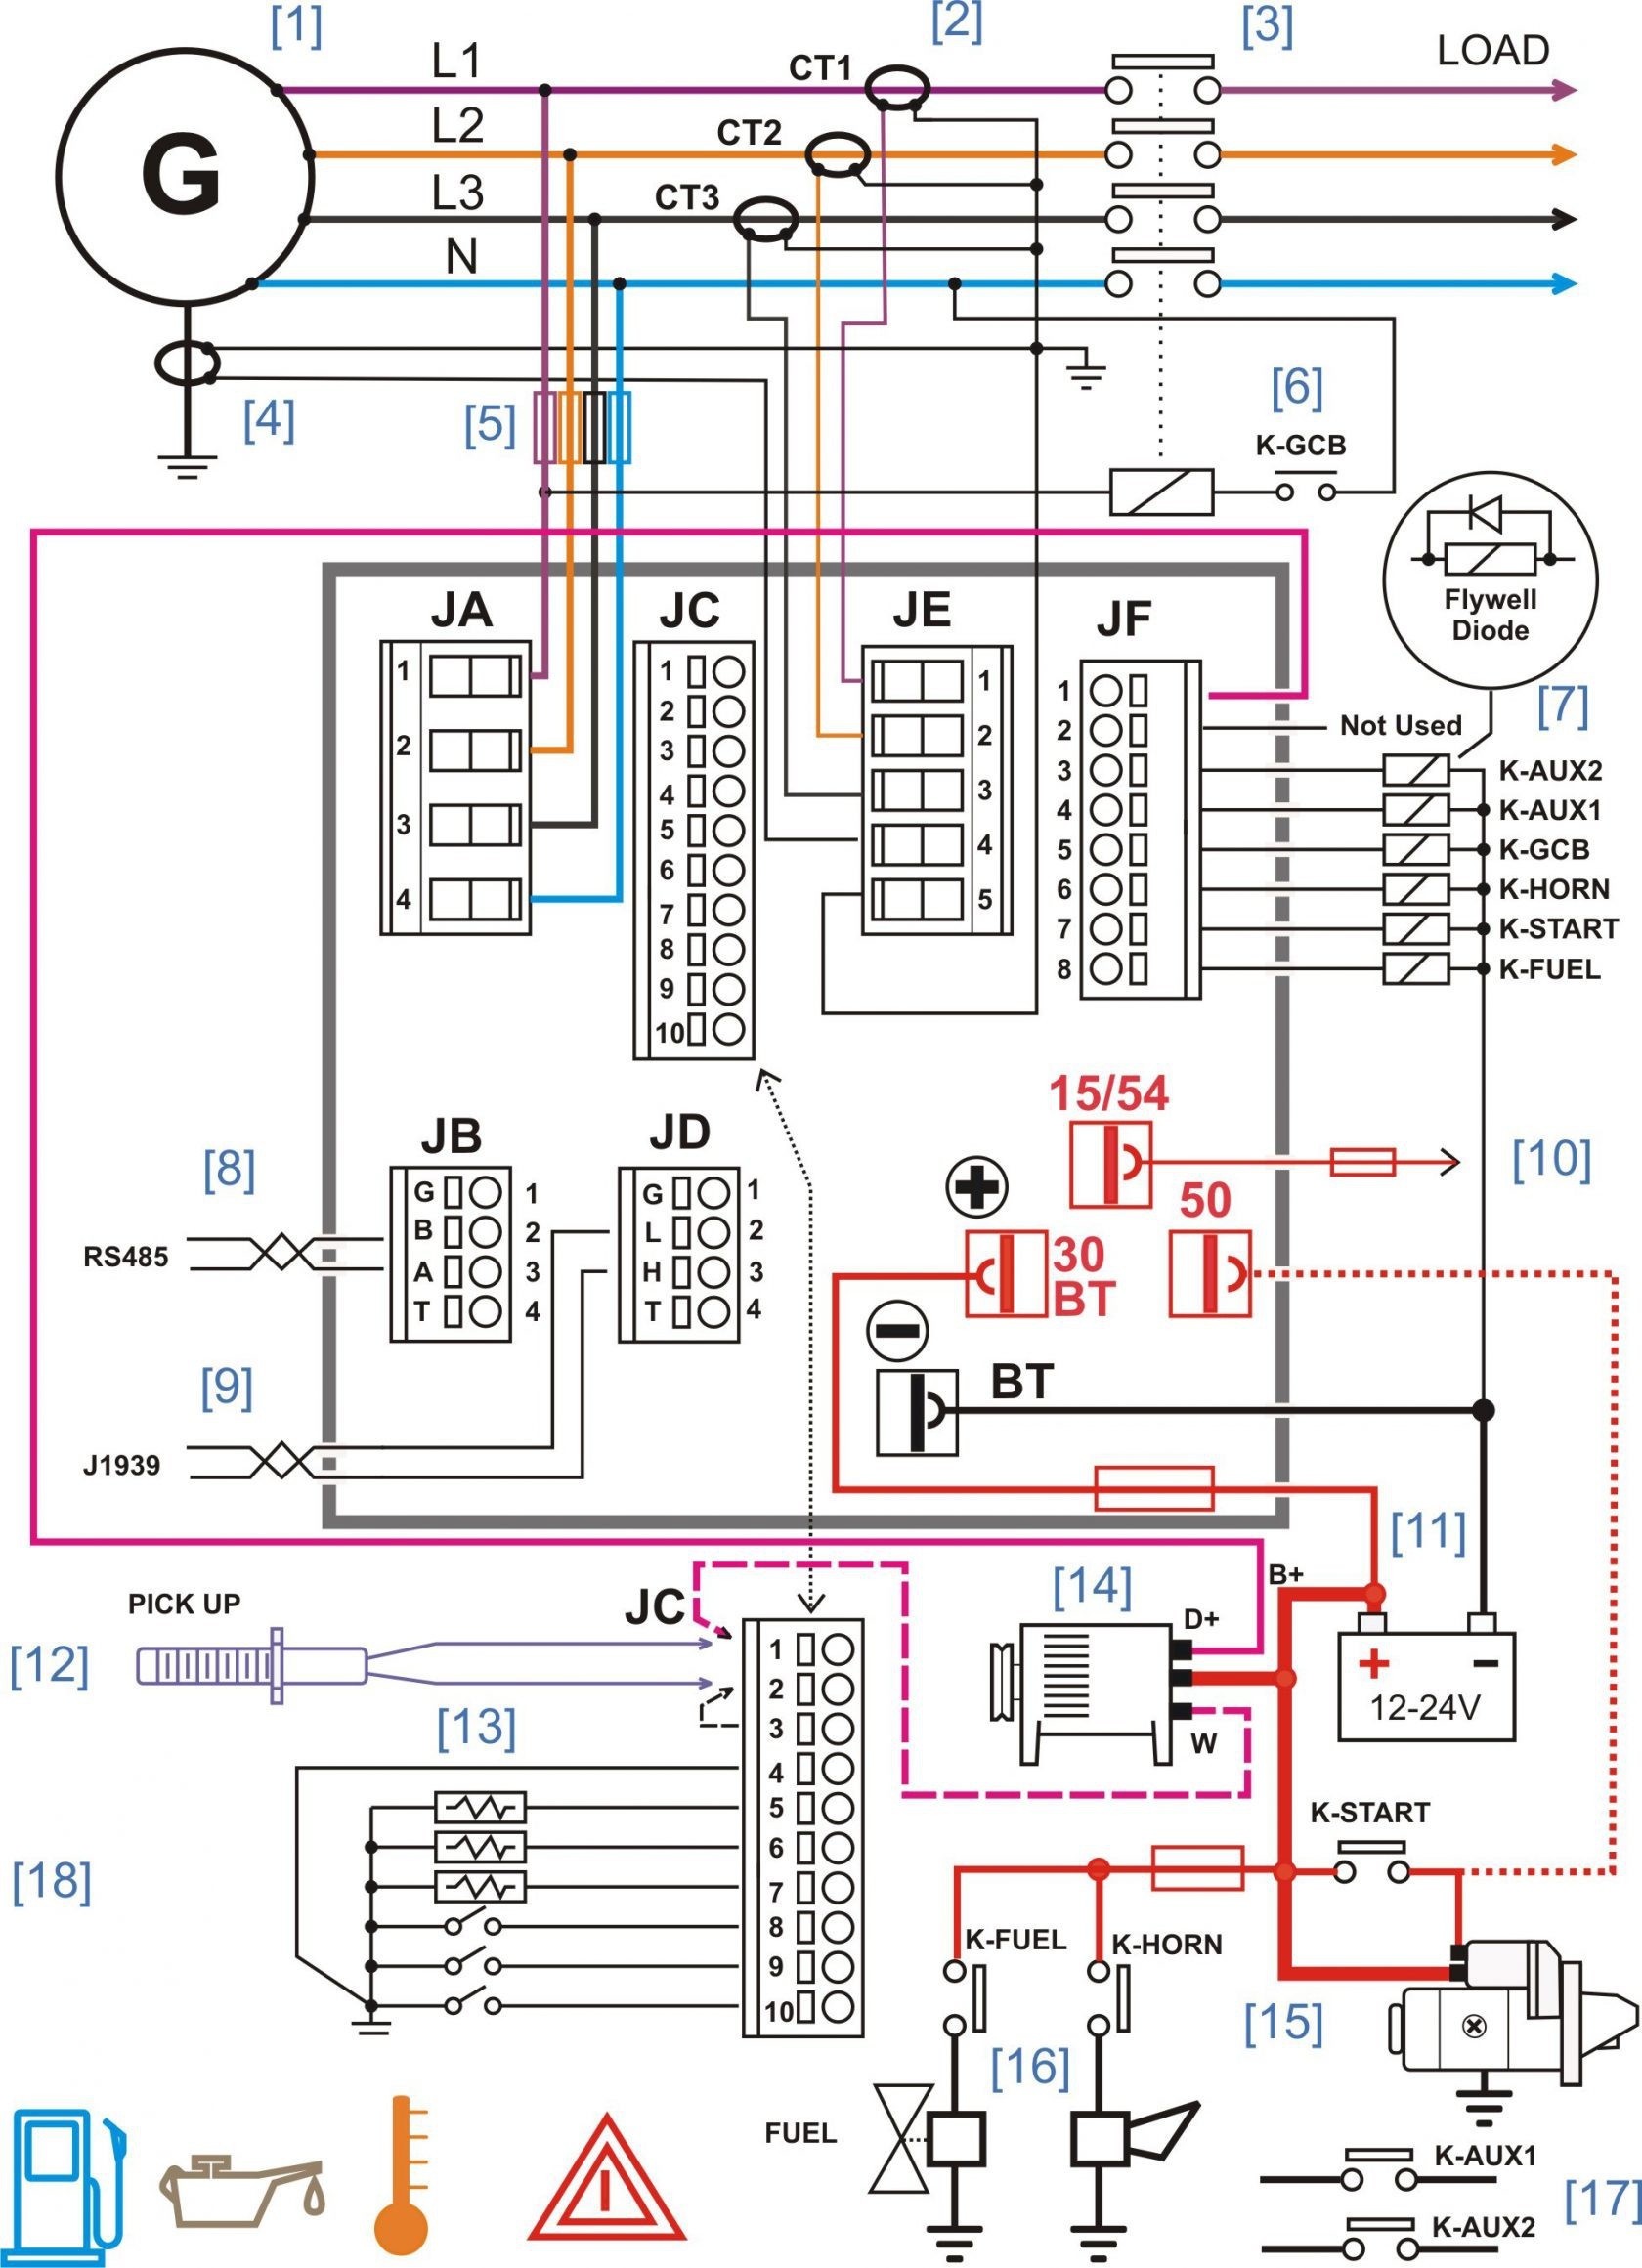 delco stereo wiring diagram Collection-Autozone Wiring Diagram Best Autozone Wiring Diagrams Best Wiring Diagram Delco Radio Model 15-k